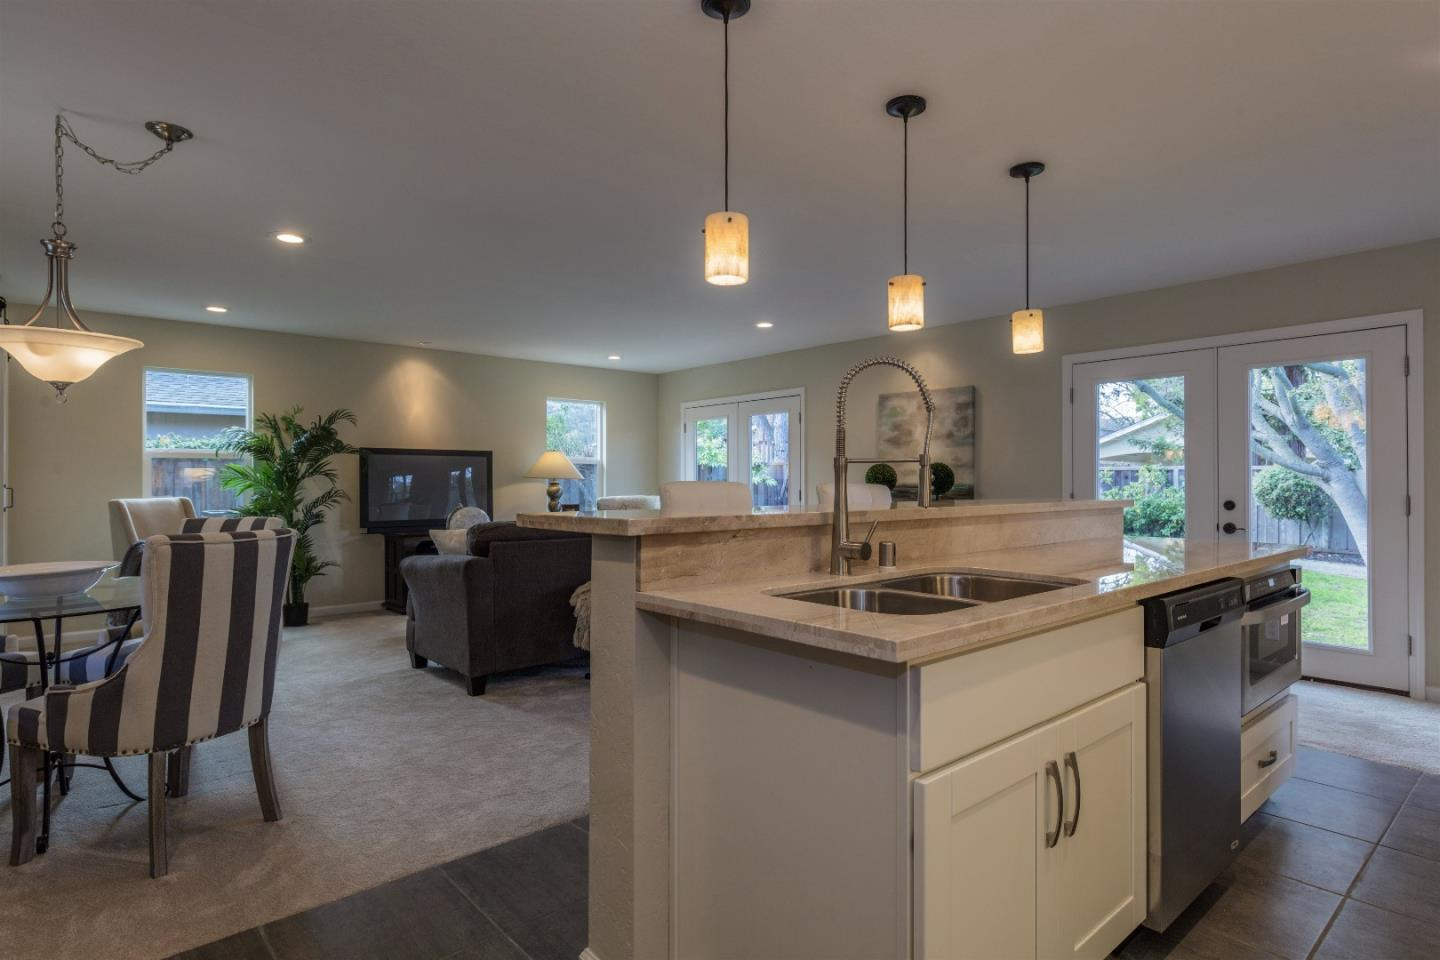 Additional photo for property listing at 5503 Muir Dr  SAN JOSE, CALIFORNIA 95124